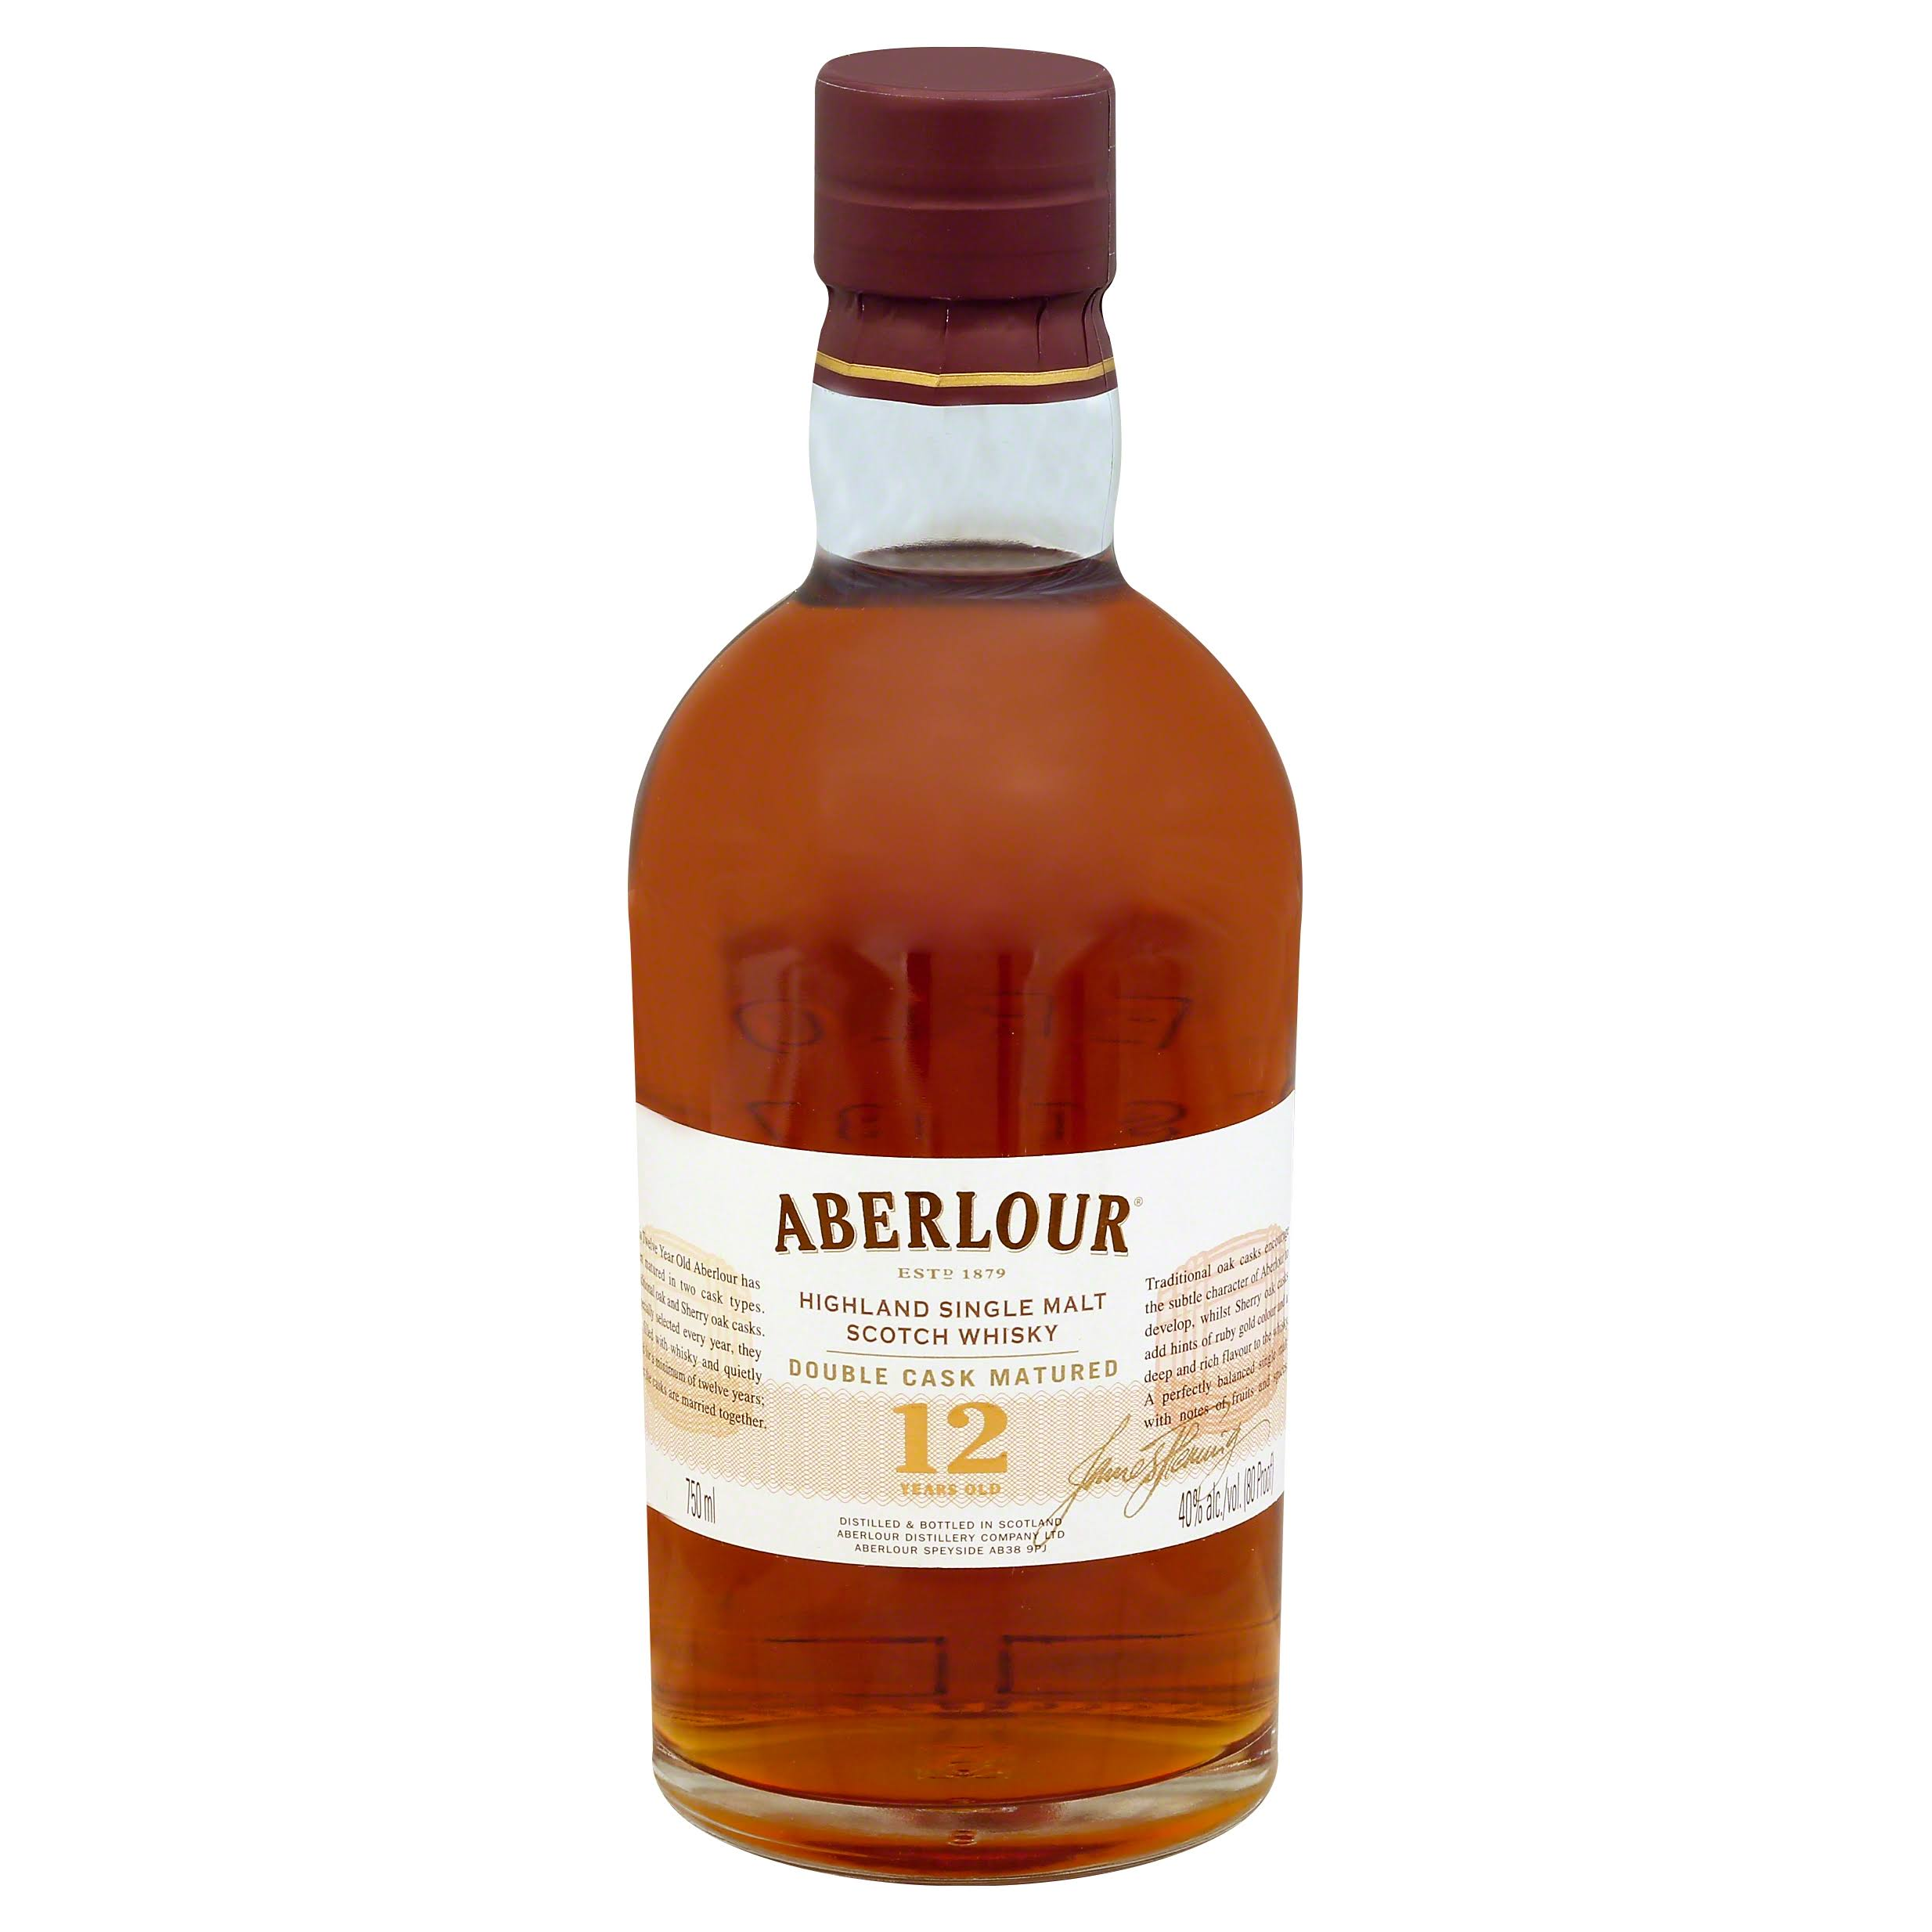 Aberlour Whisky, Highland Single Malt Scotch - 750 ml